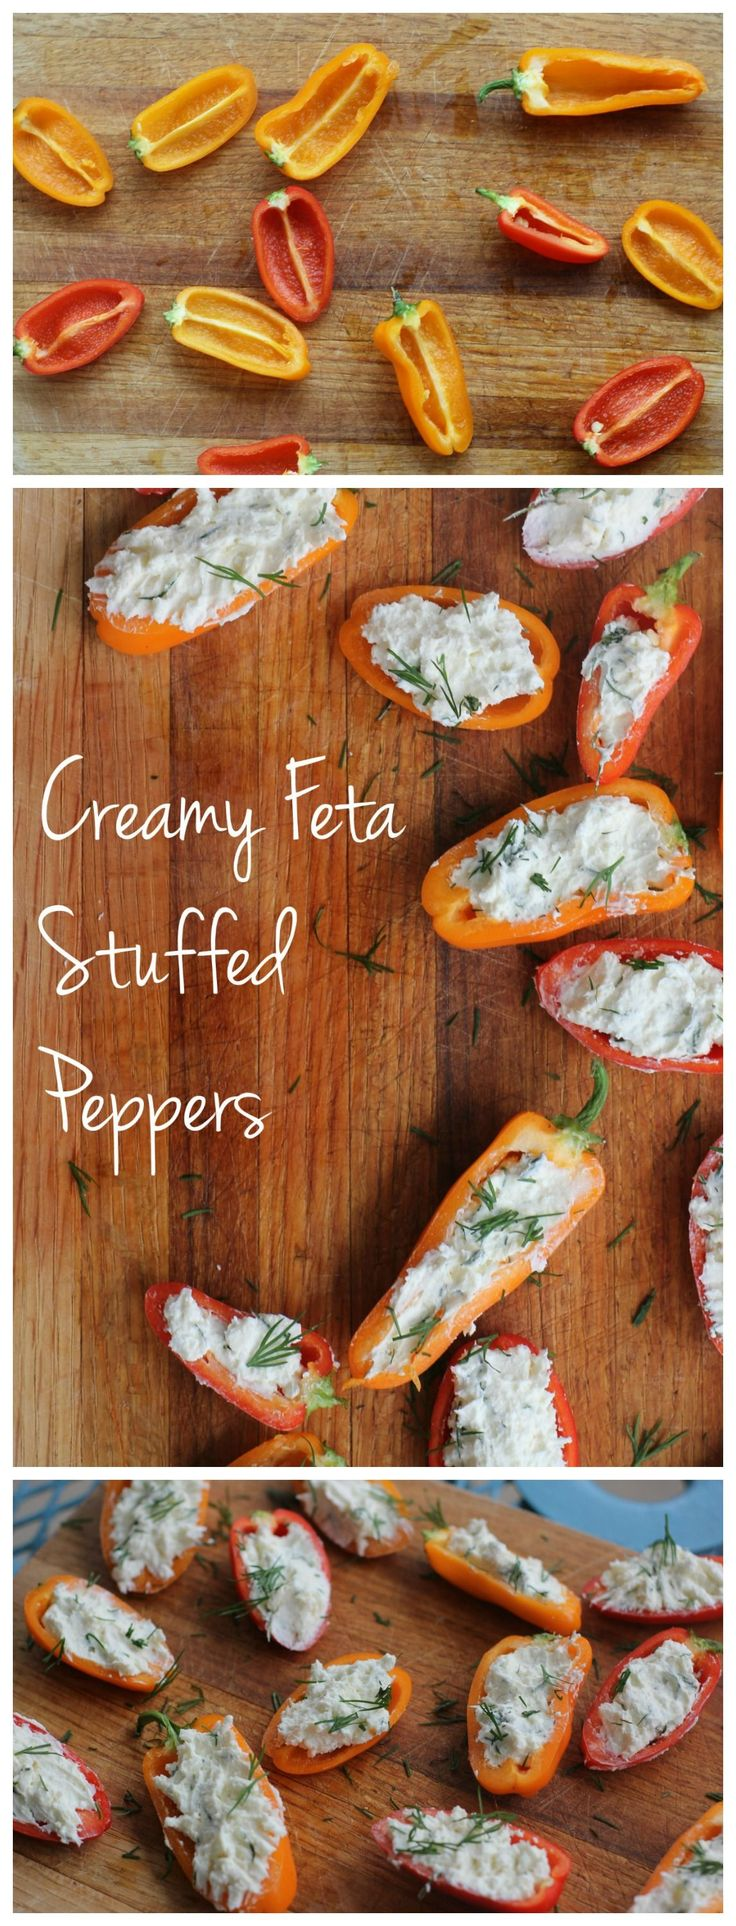 These creamy feta stuffed peppers are so easy to make! They're a quick gluten free appetizer that is perfect for a party or an after school snack!